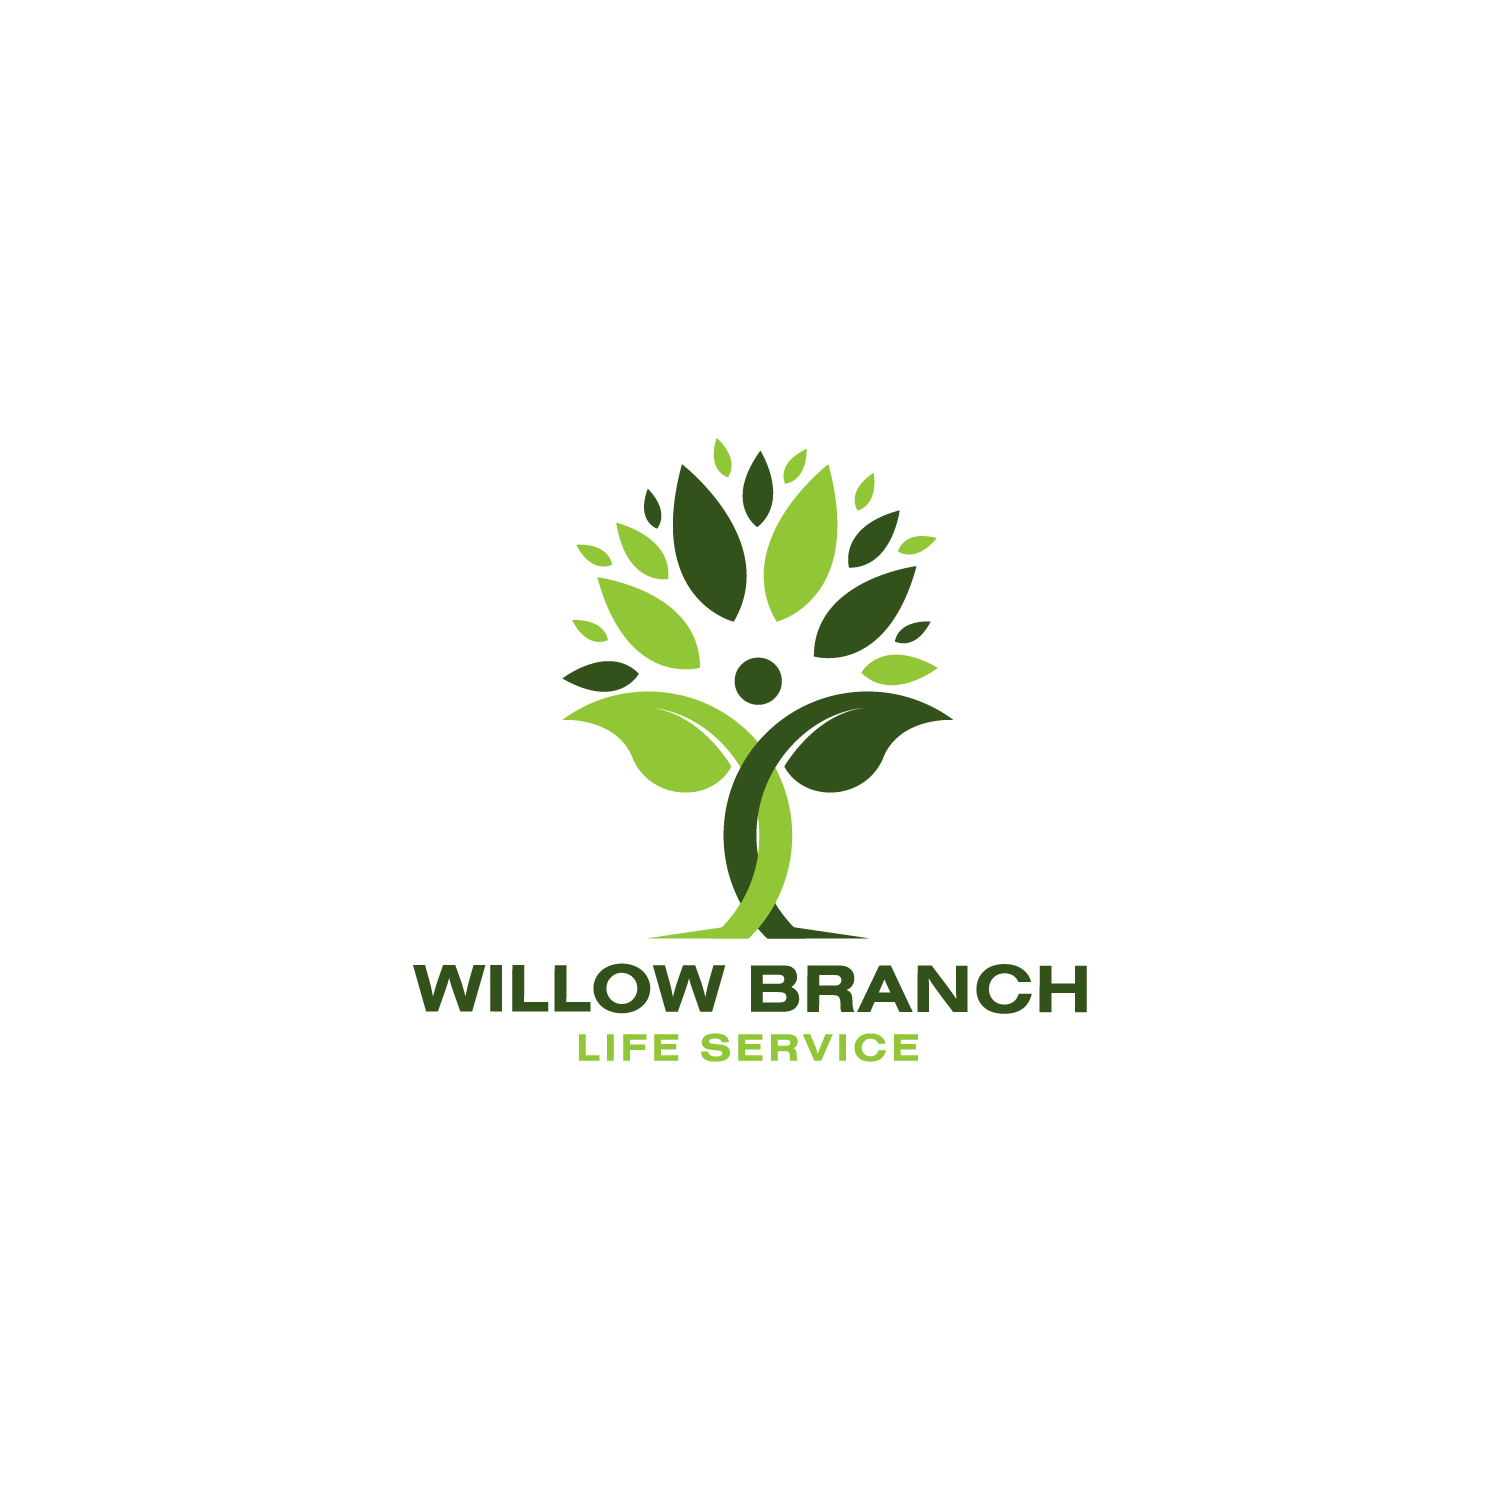 Logo Design by Batter Fly - Entry No. 155 in the Logo Design Contest Artistic Logo Design for Willow Branch Life Service.